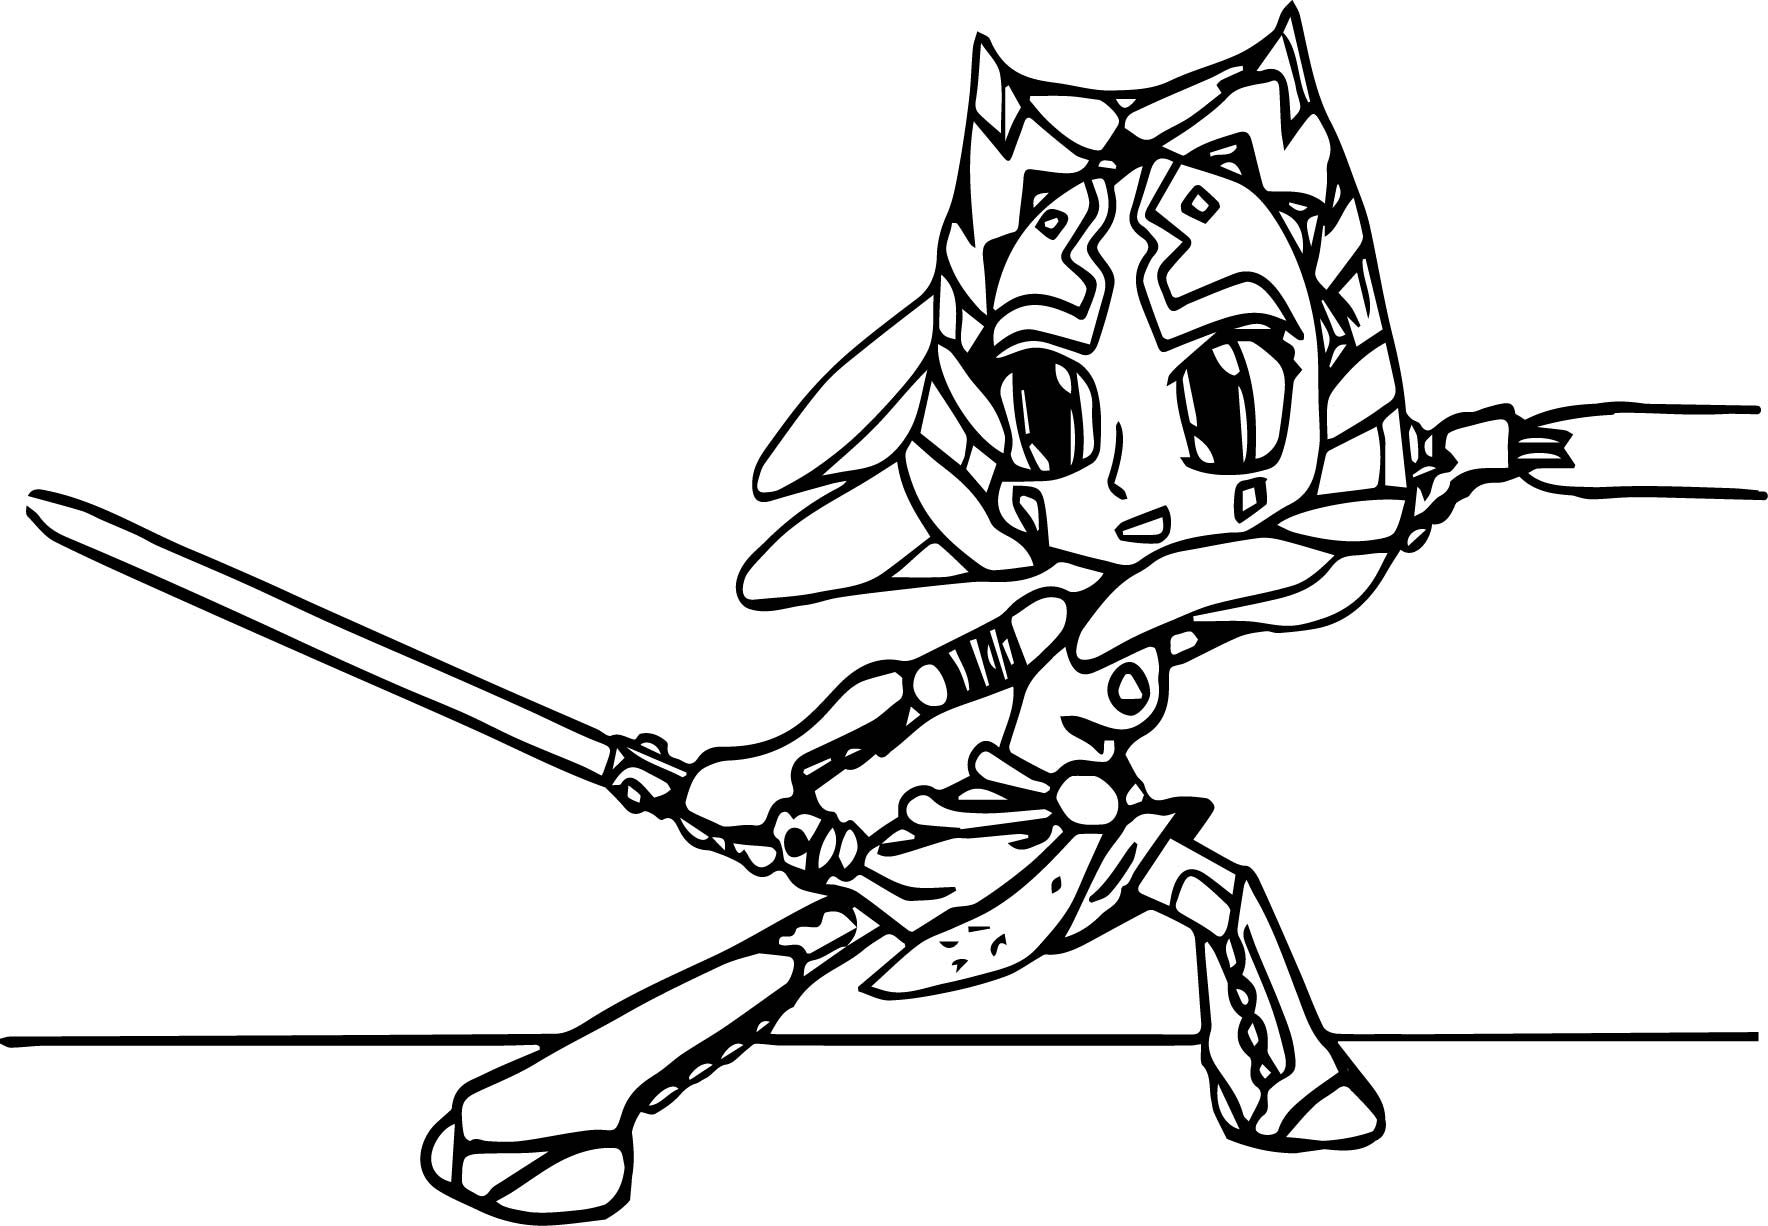 asoka coloring pages - photo#35